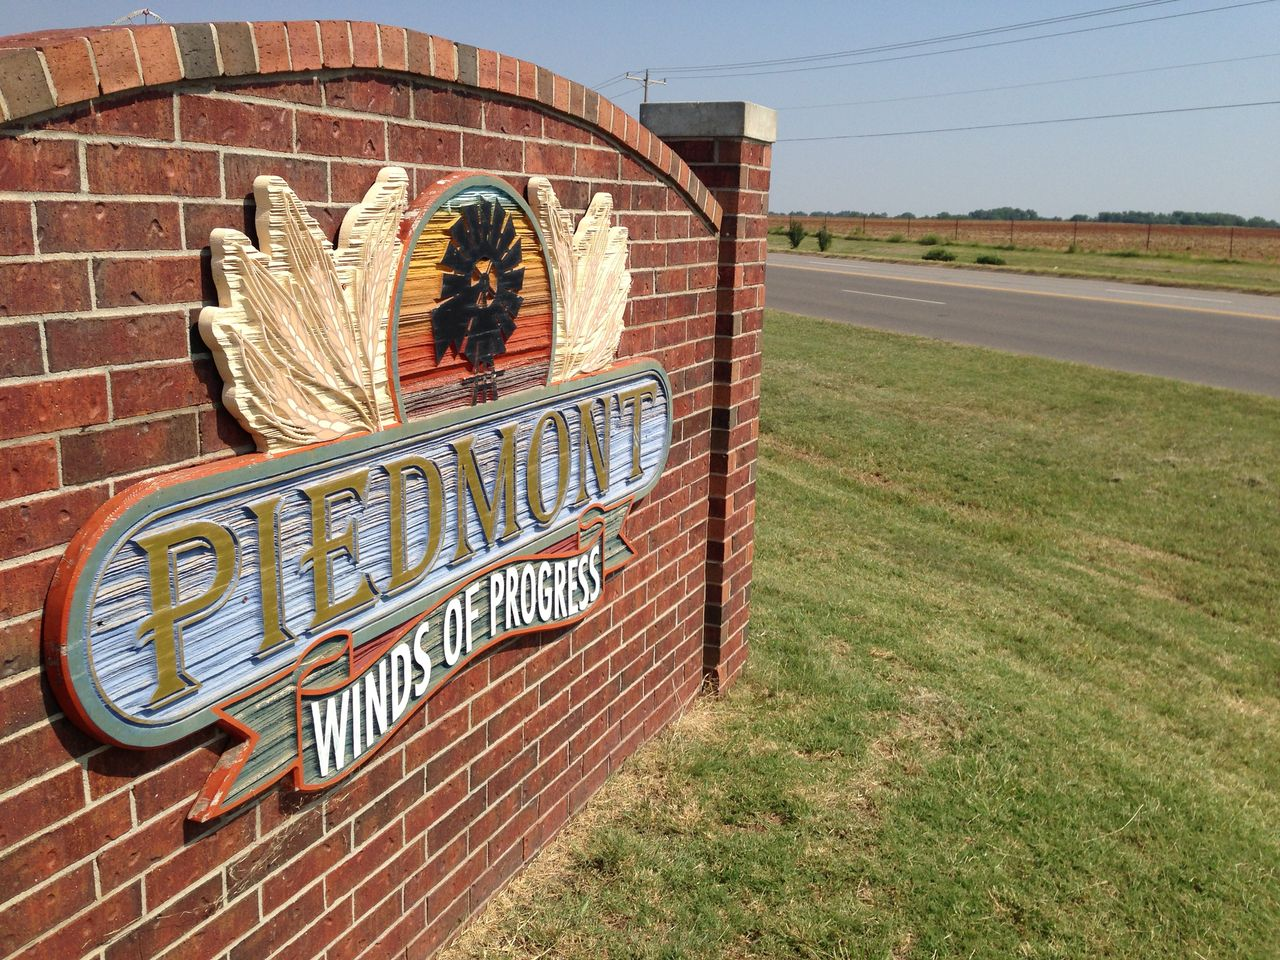 Piedmont sign